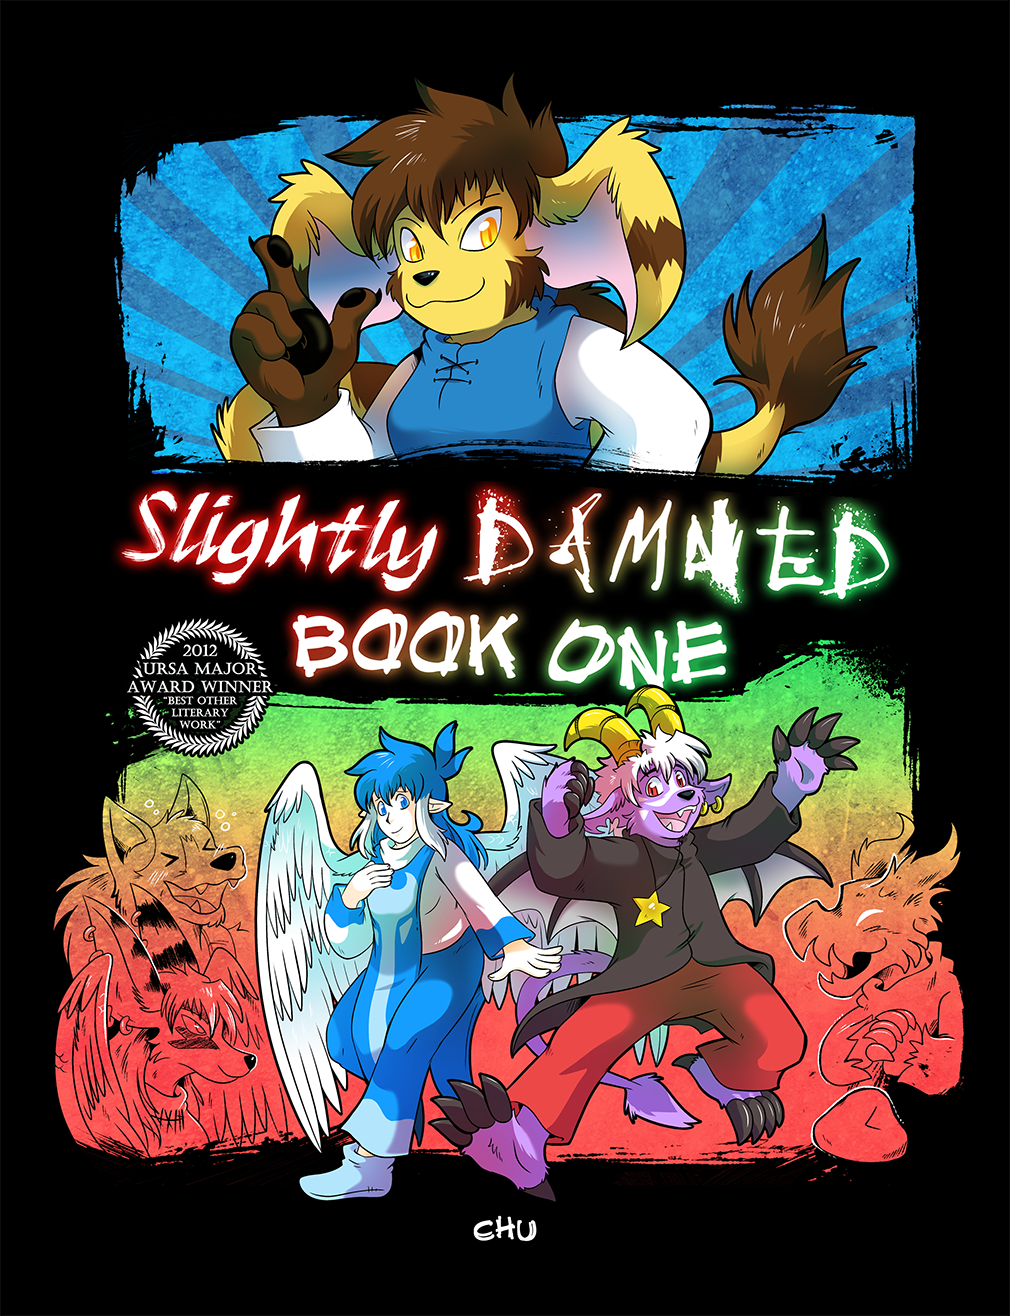 Slightly Damned Book 1